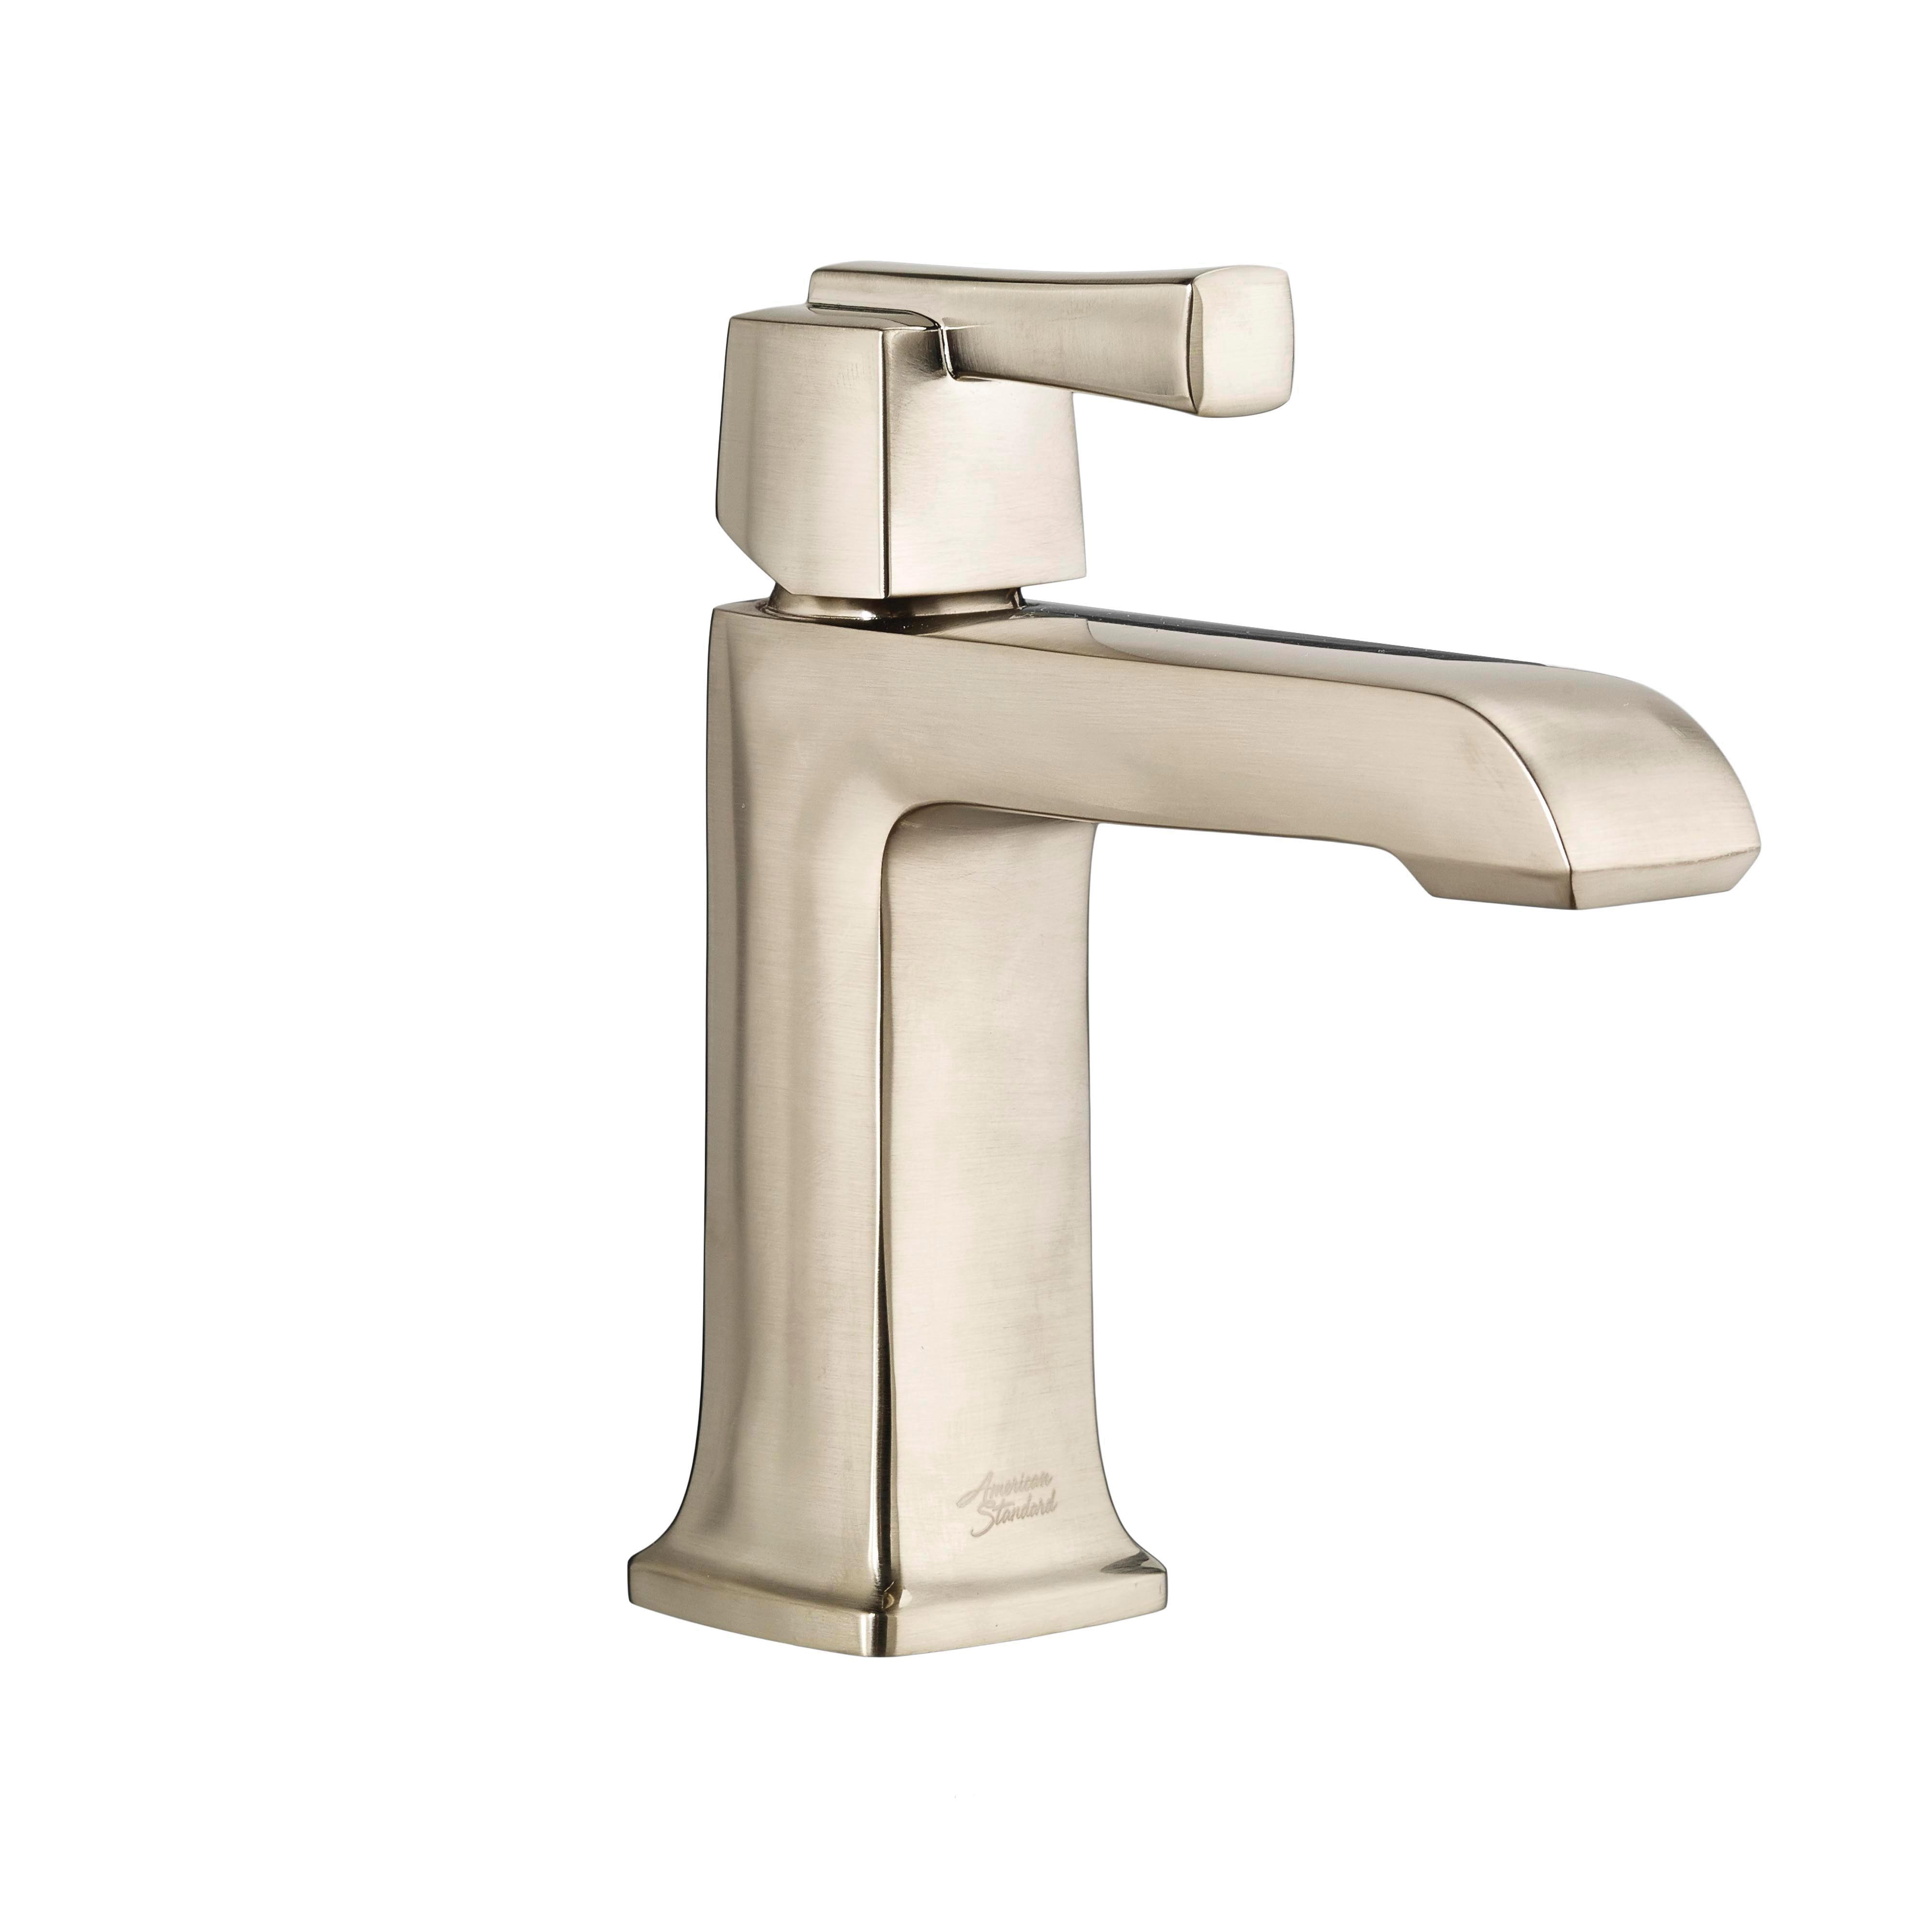 Consolidated Supply Co American Standard Townsend - How to install a bathroom faucet with pop up drain